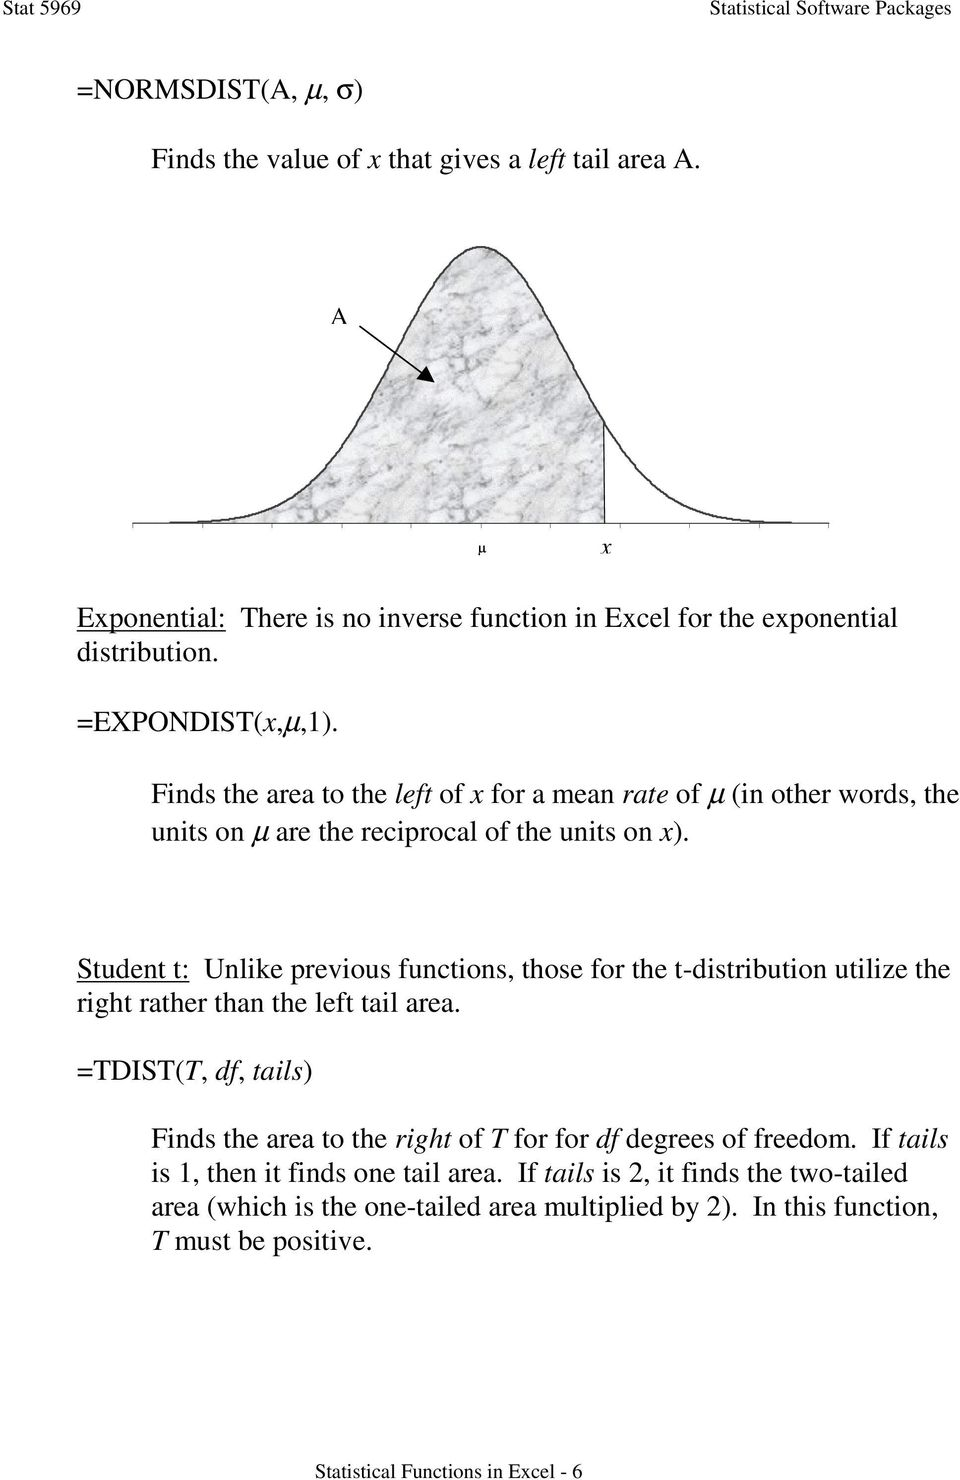 Statistical Functions in Excel - PDF